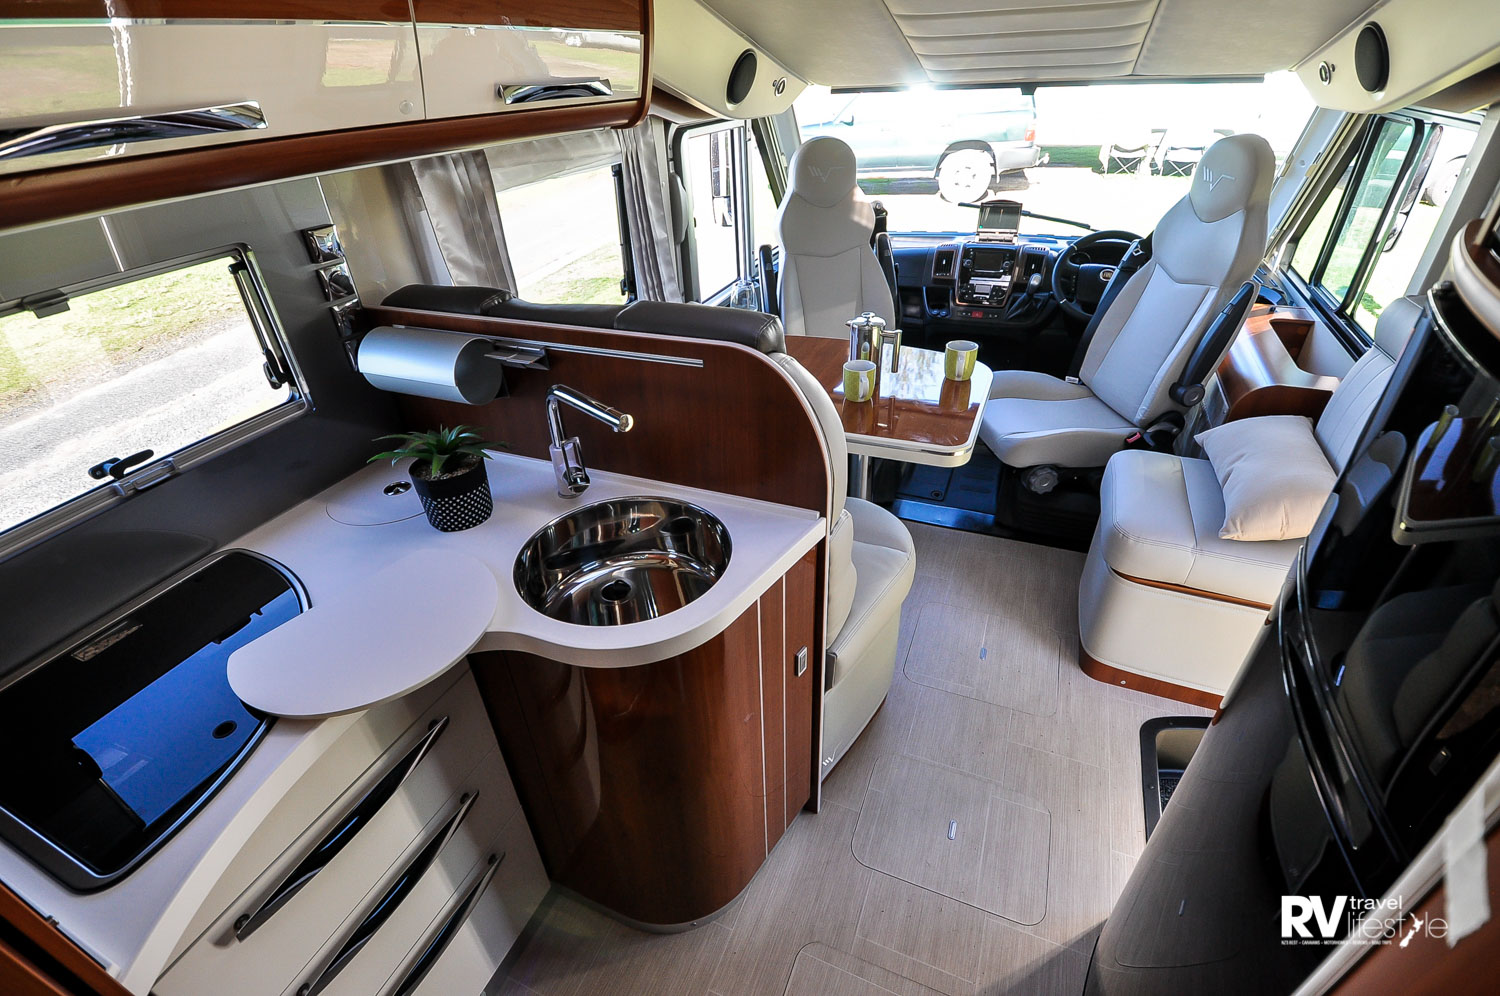 The kitchen in the K-Yacht 80: drawers below the gas hob, the sink lid doubles as a chopping board, the rubbish bin is below the bench in the rear corner. Overhead lockers and under-sink pull-out storage provides many storage options